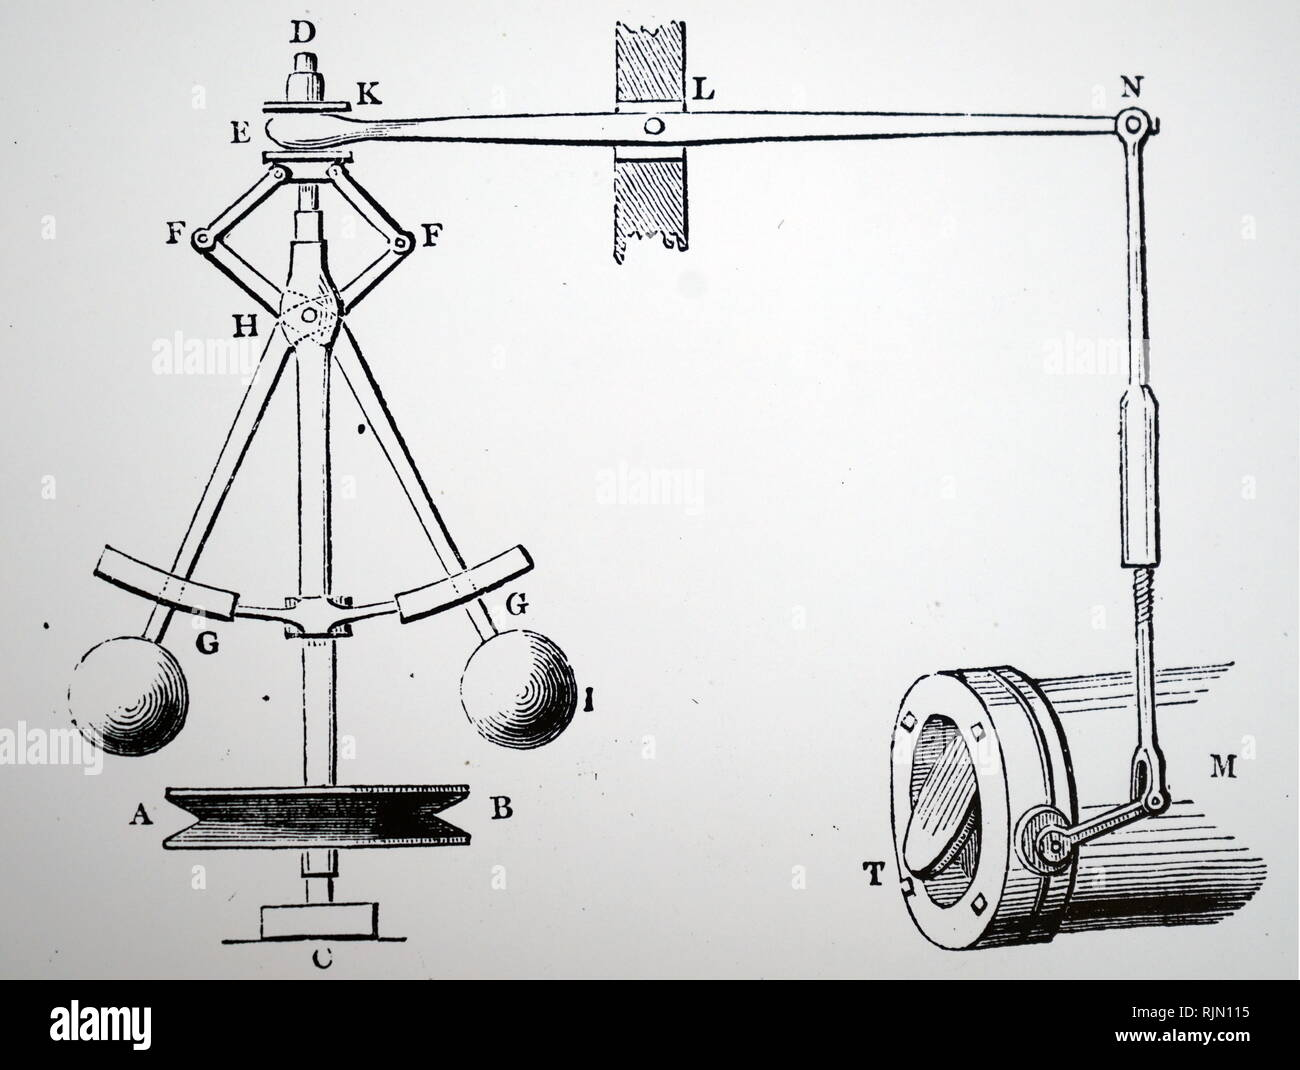 Illustration showing Watt's steam governor: 1855 - Stock Image